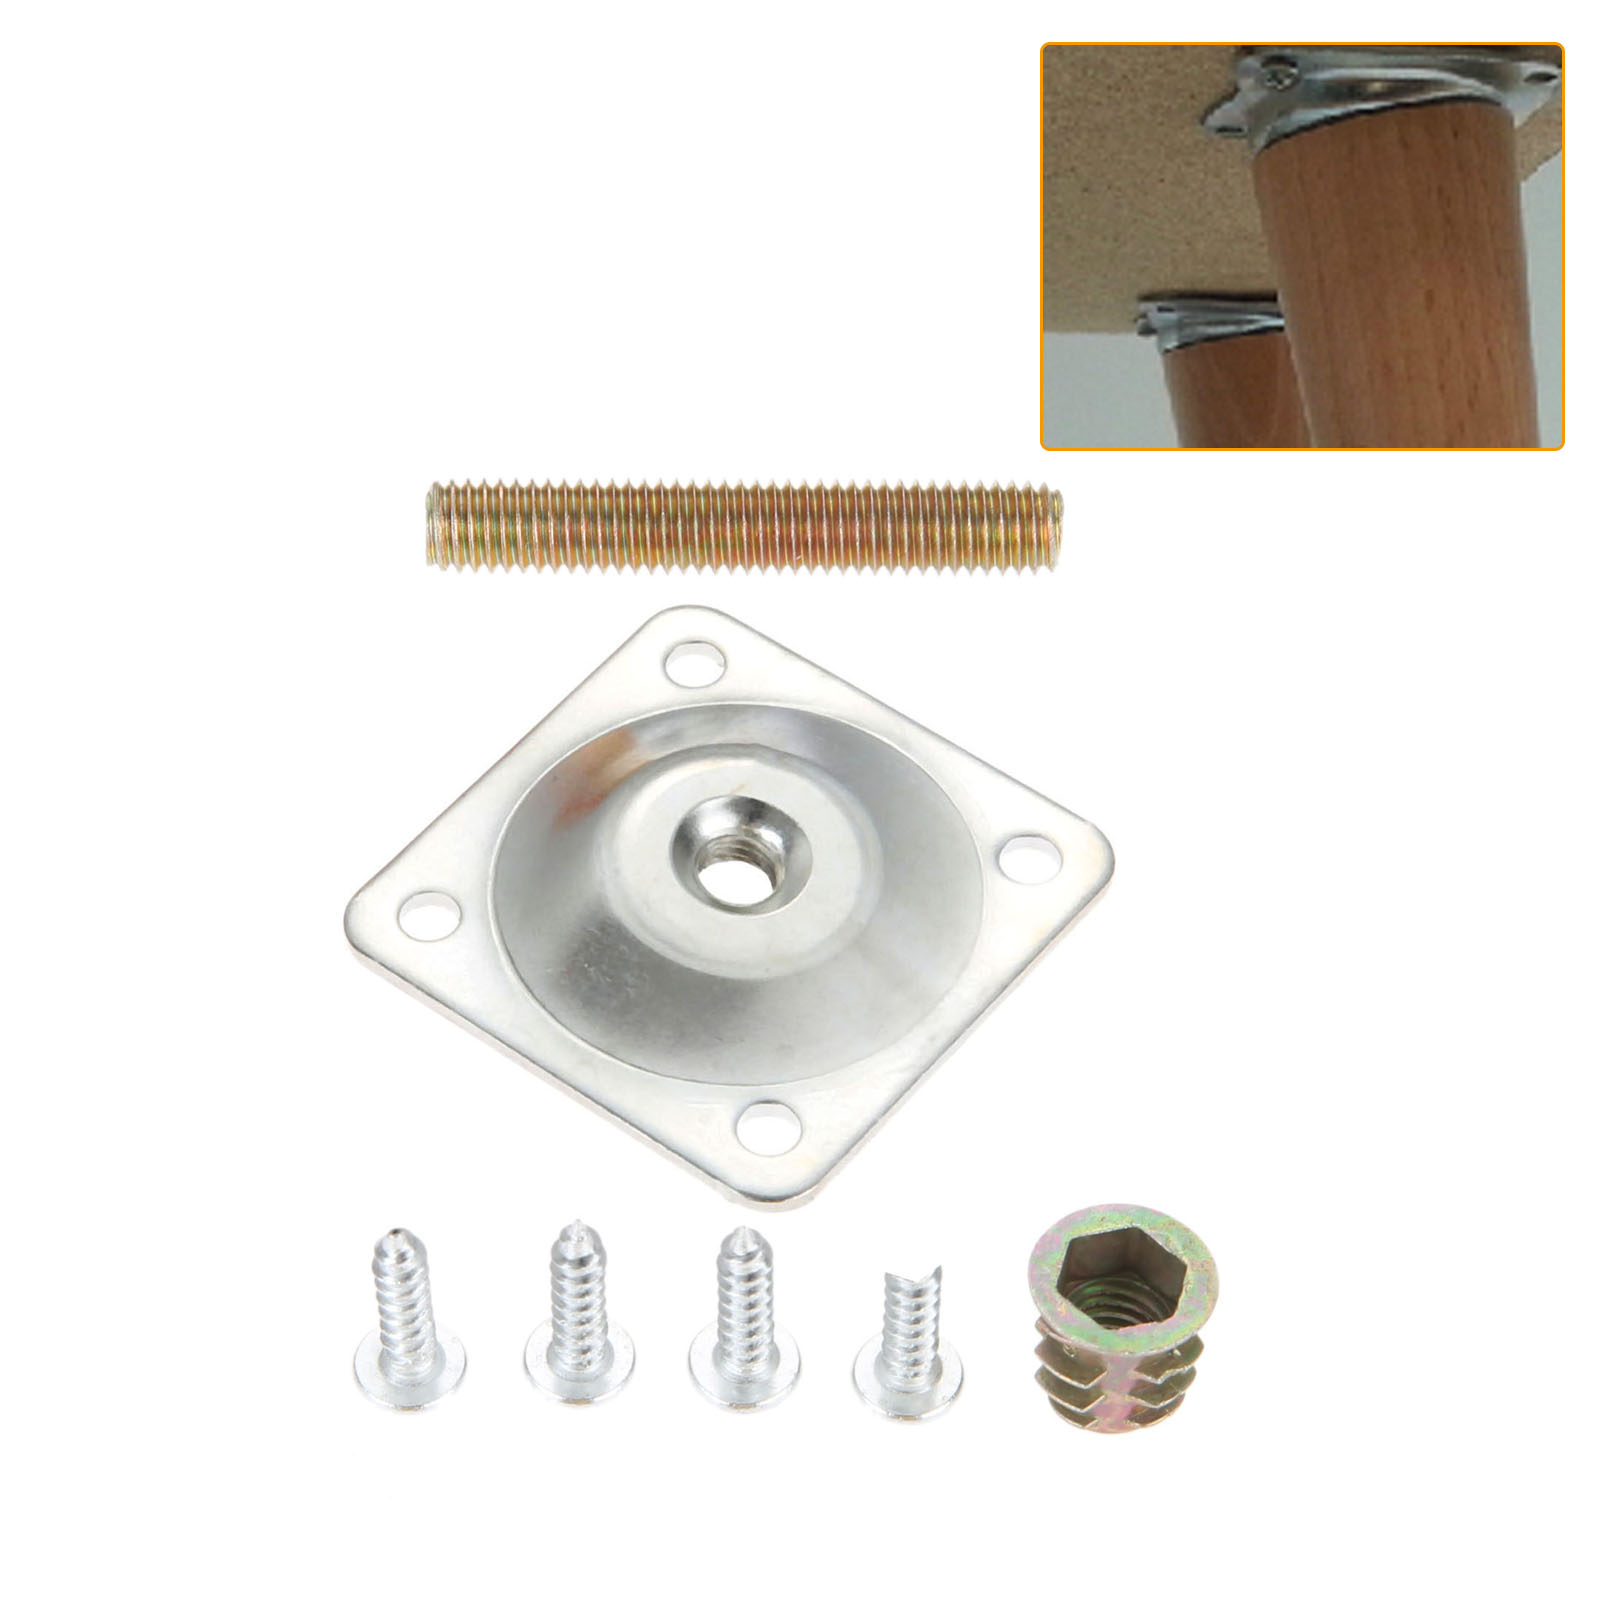 DRELD Iron Furniture Leg Mounting Plates 48x48mm Soft Table Chair Feet Attachment Plates With Hanger Bolts Screws Adapters